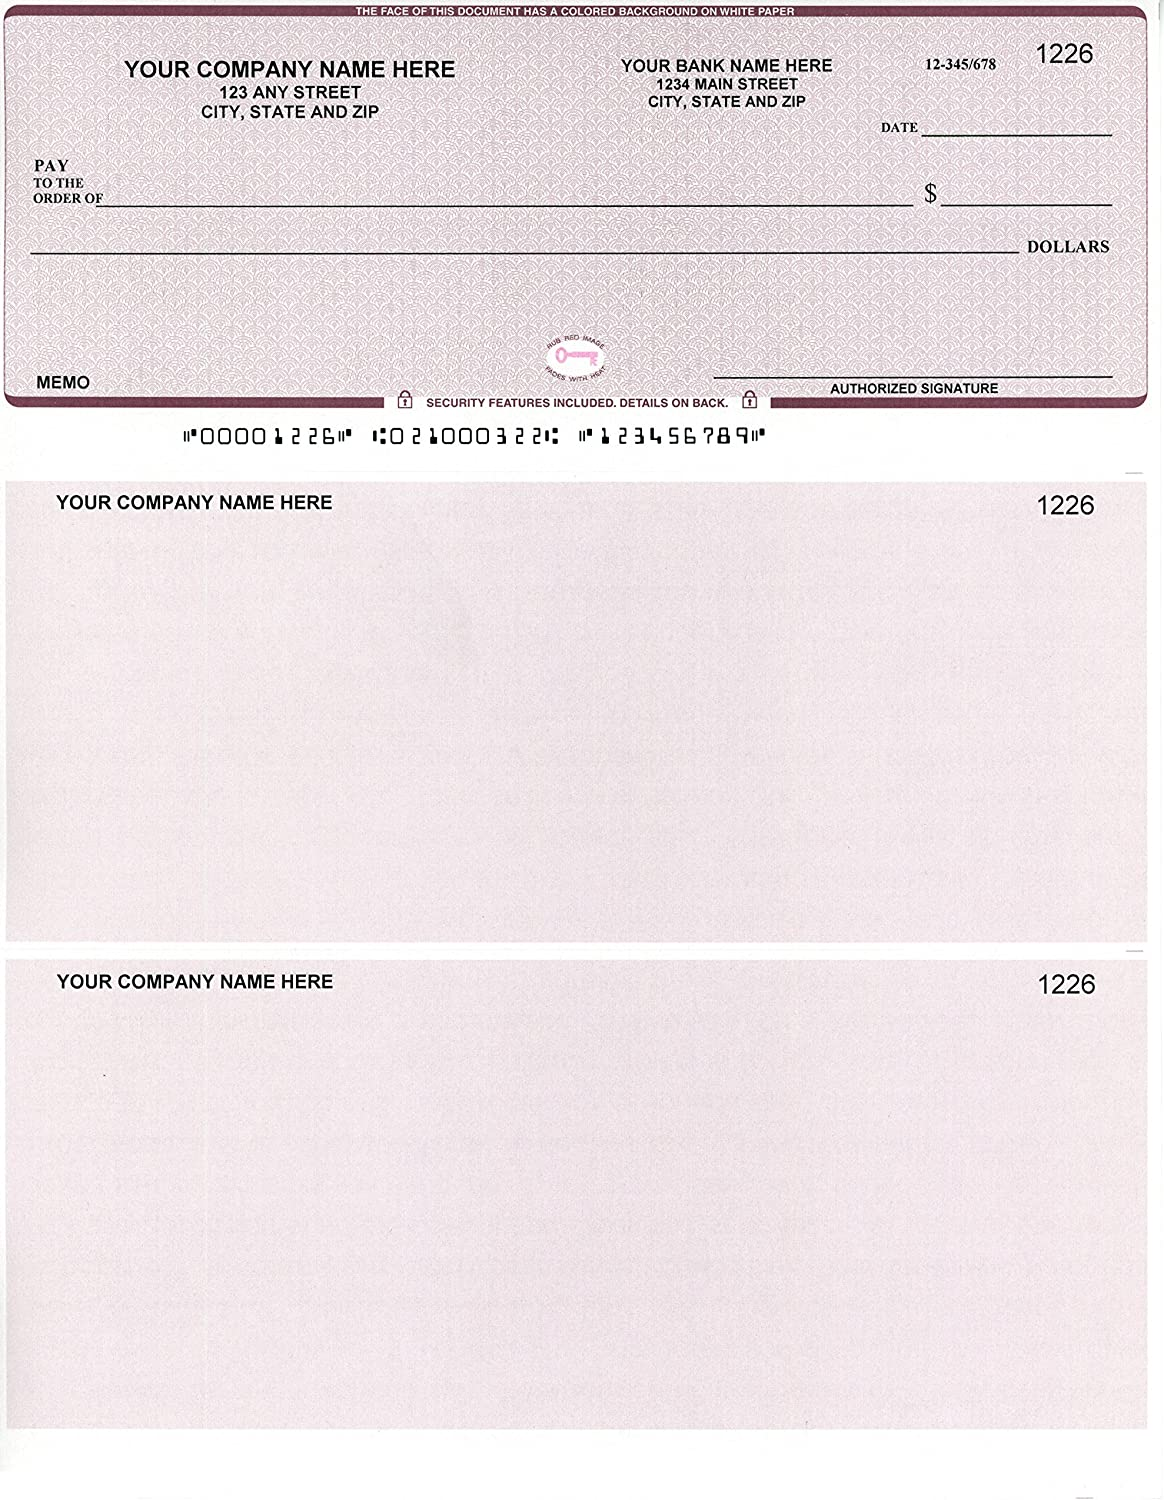 Mail order 250 National products Printed Computer Laser Checks - Compatible on Check Top fo